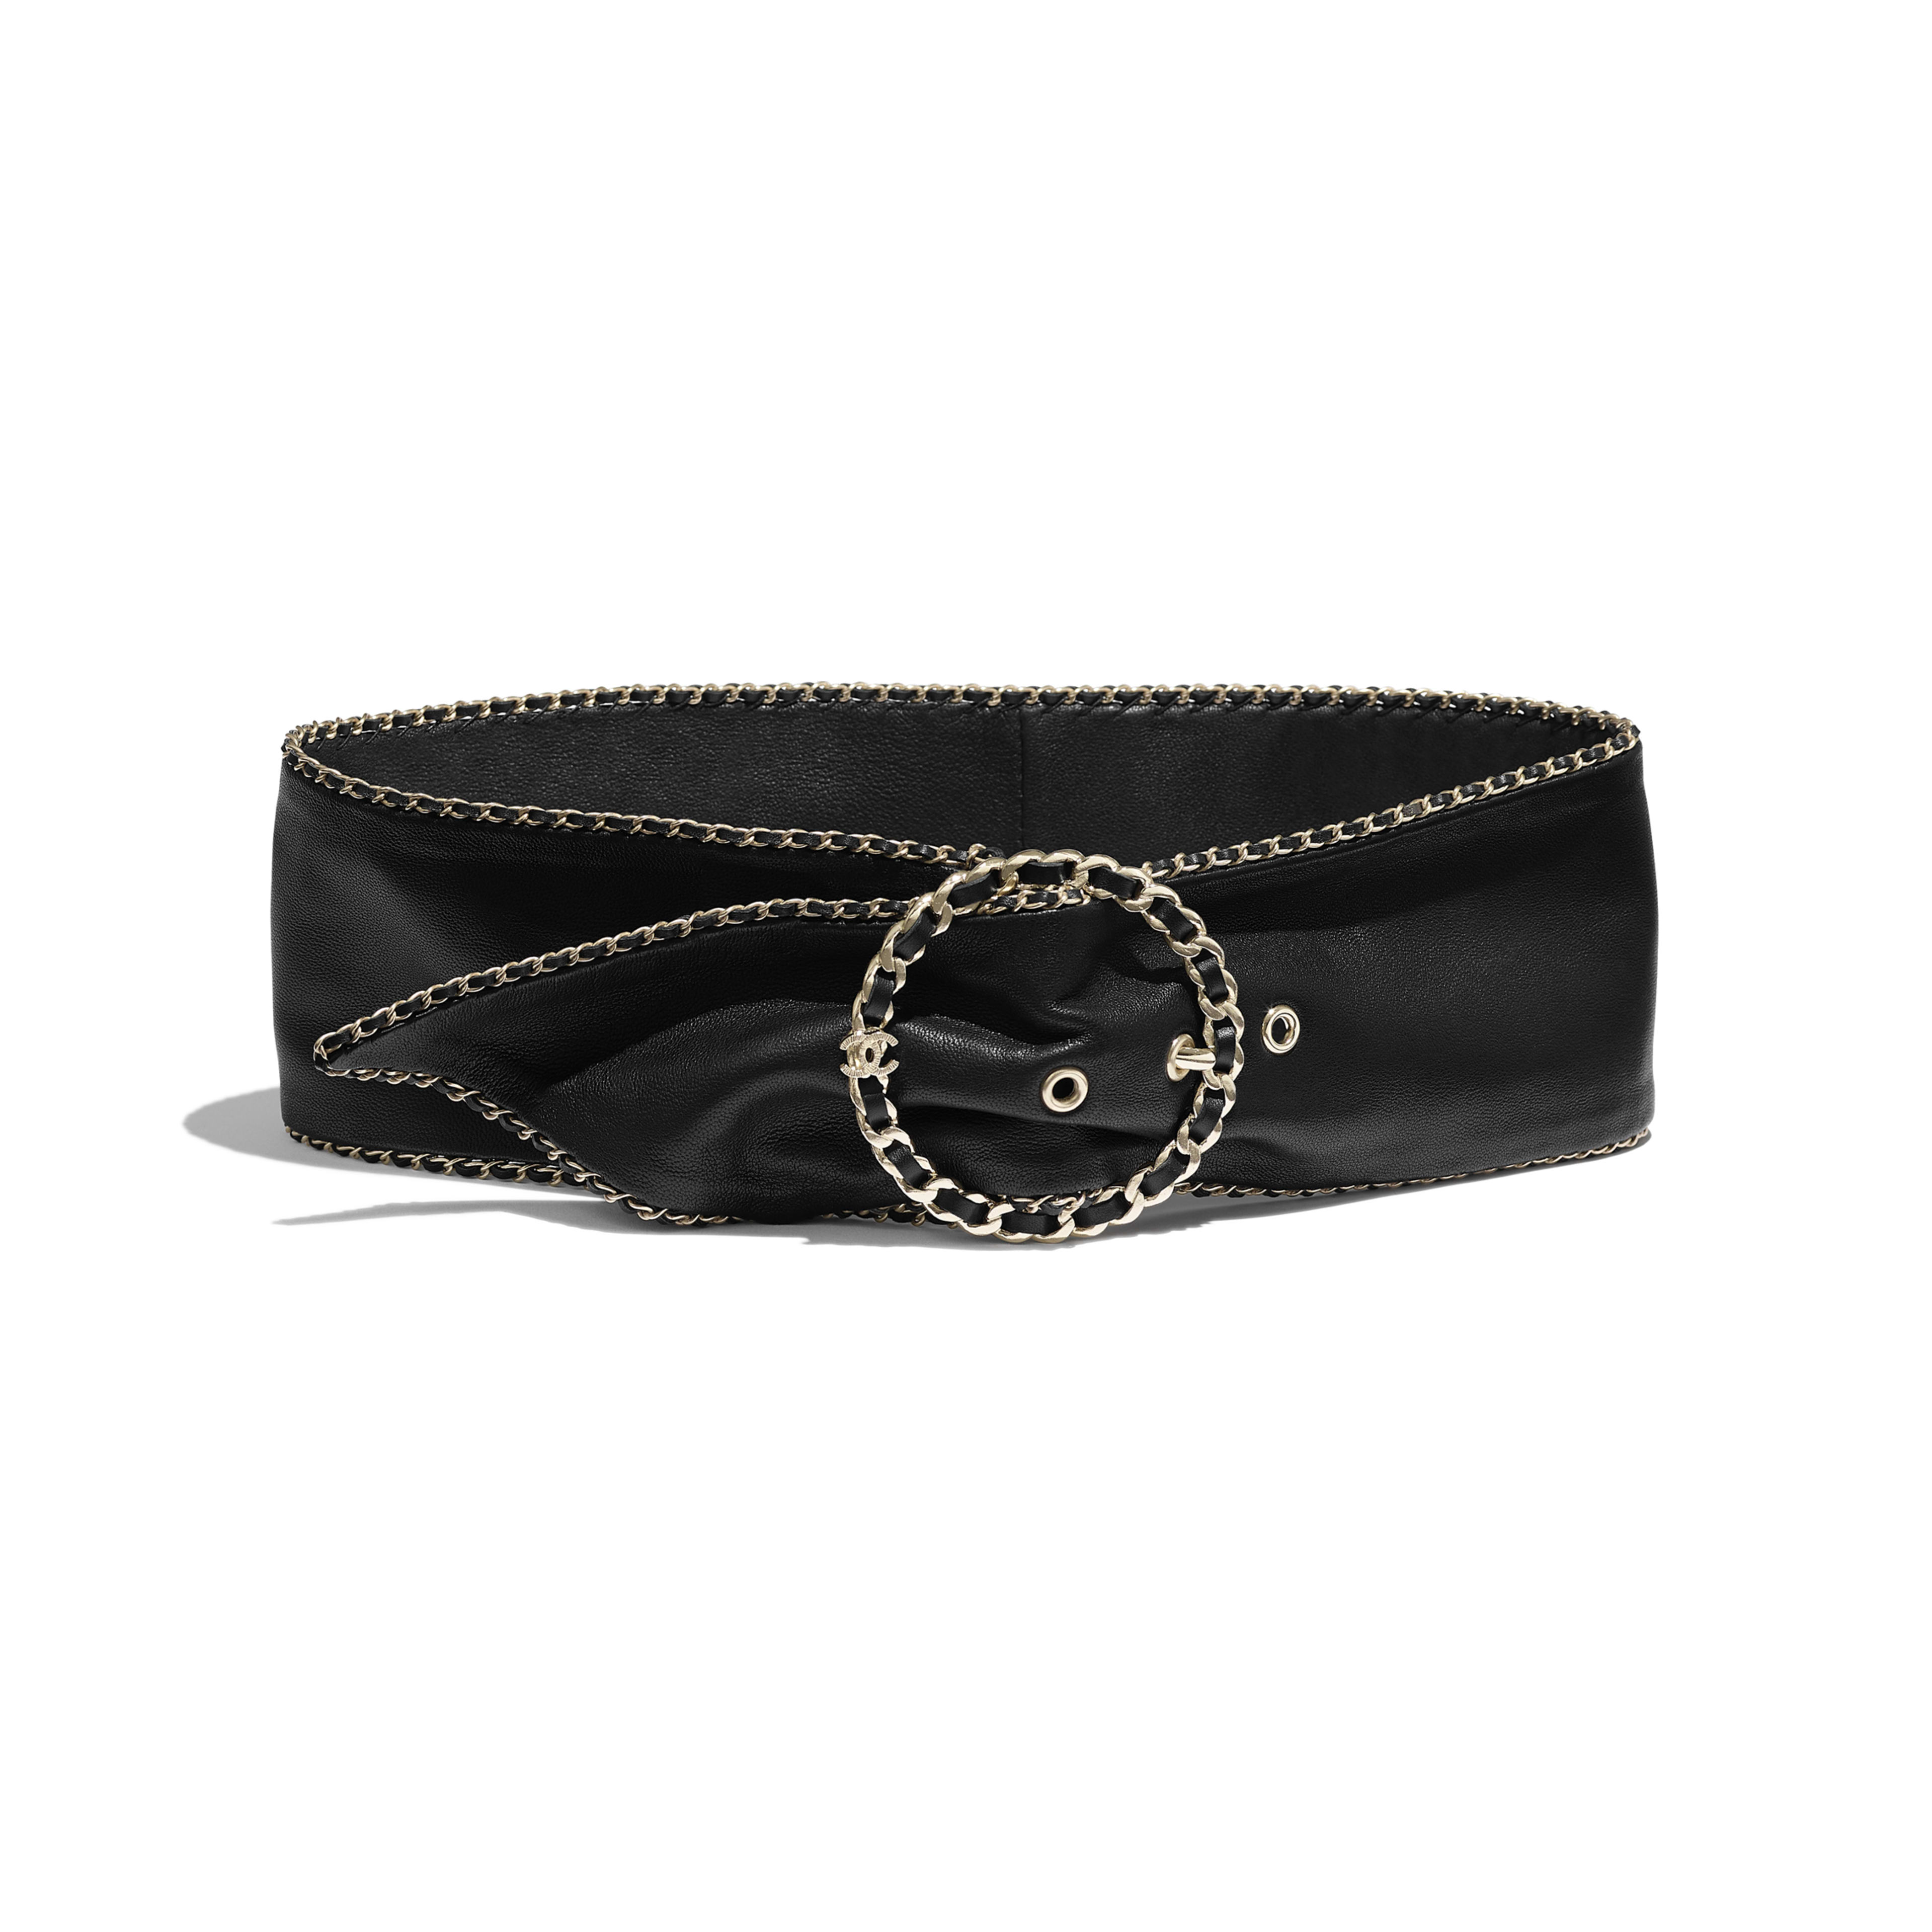 Belt - Black - Lambskin & Gold-Tone Metal - Default view - see full sized version